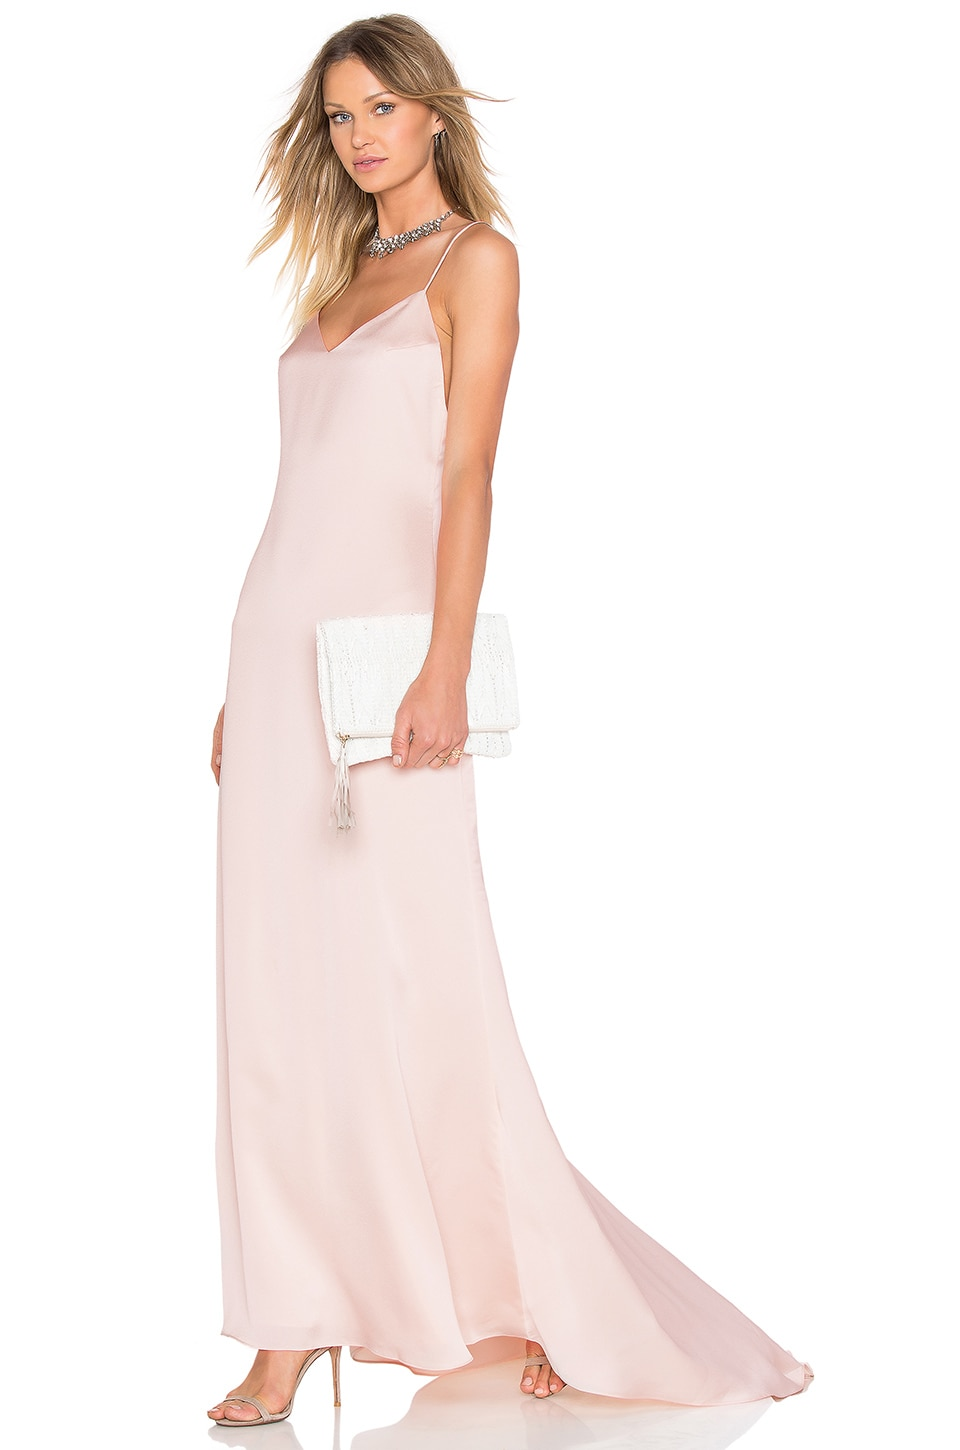 Lovers + Friends x REVOLVE The Slip Dress in Champagne